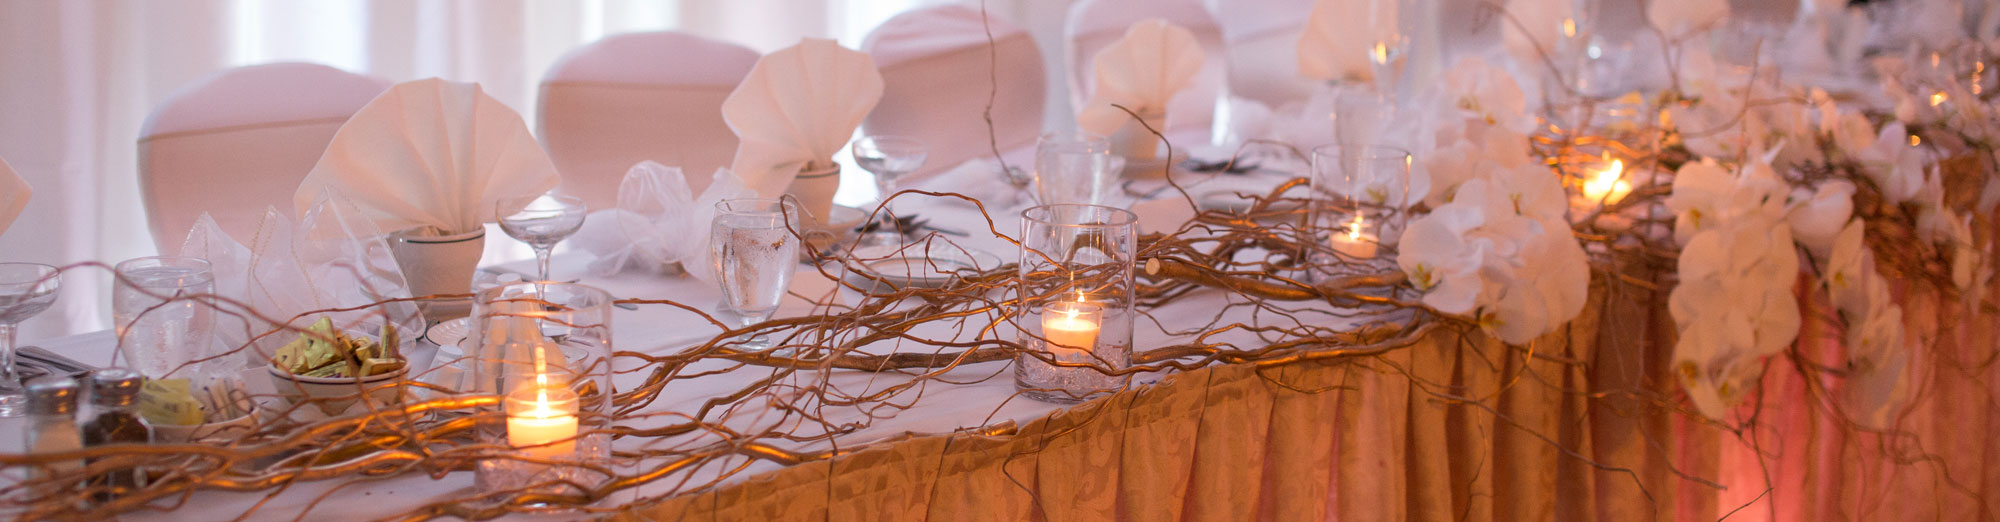 Elegant white and glass table settings